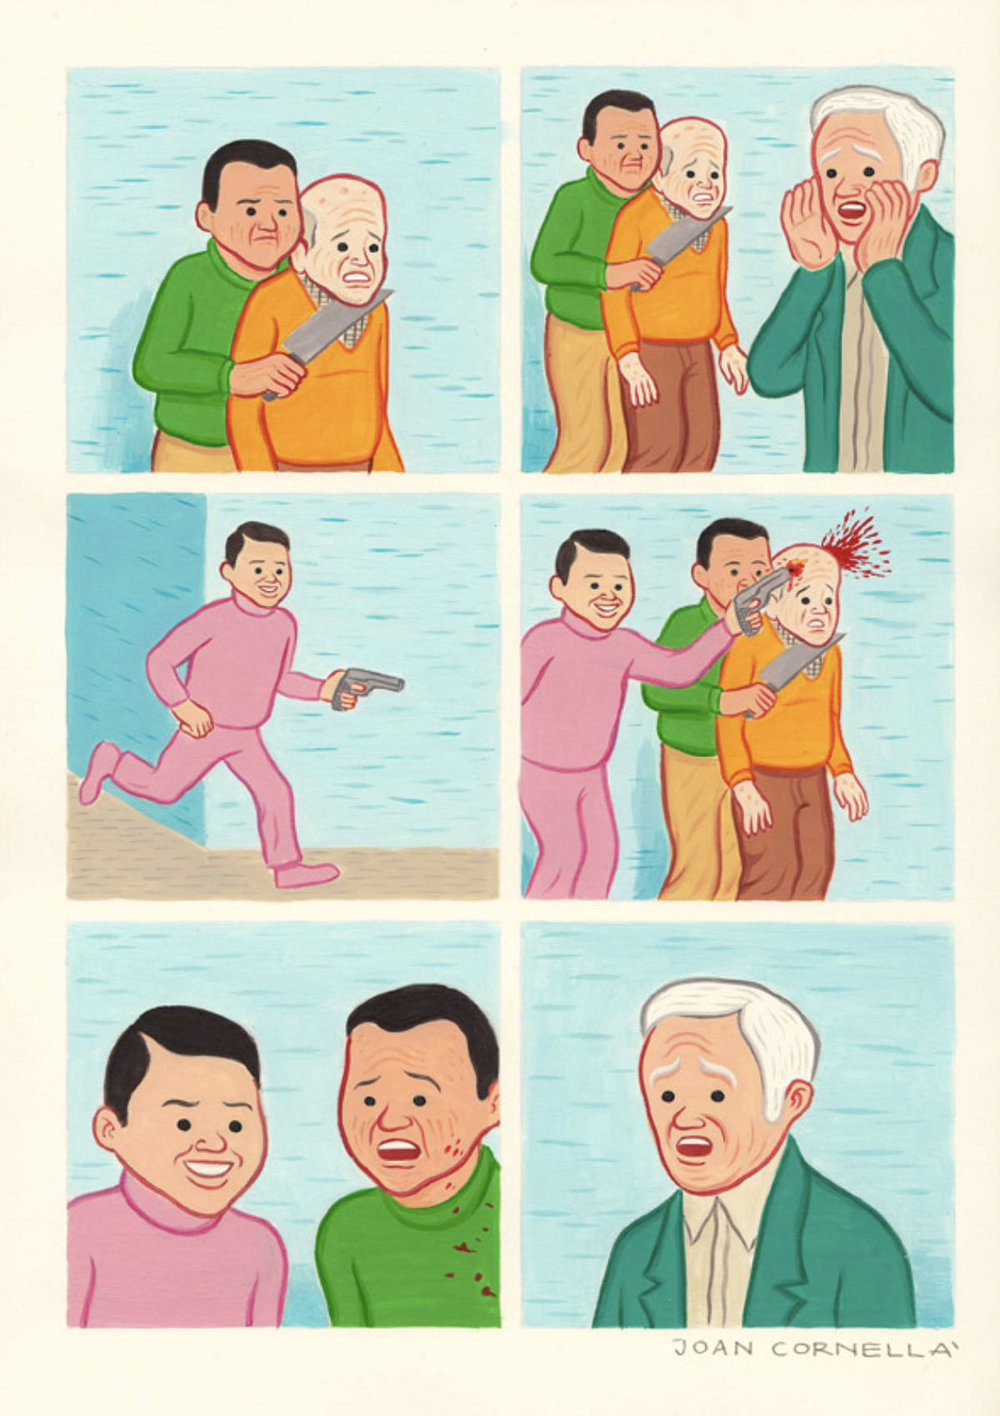 joan_cornella_exhibition_05.jpg